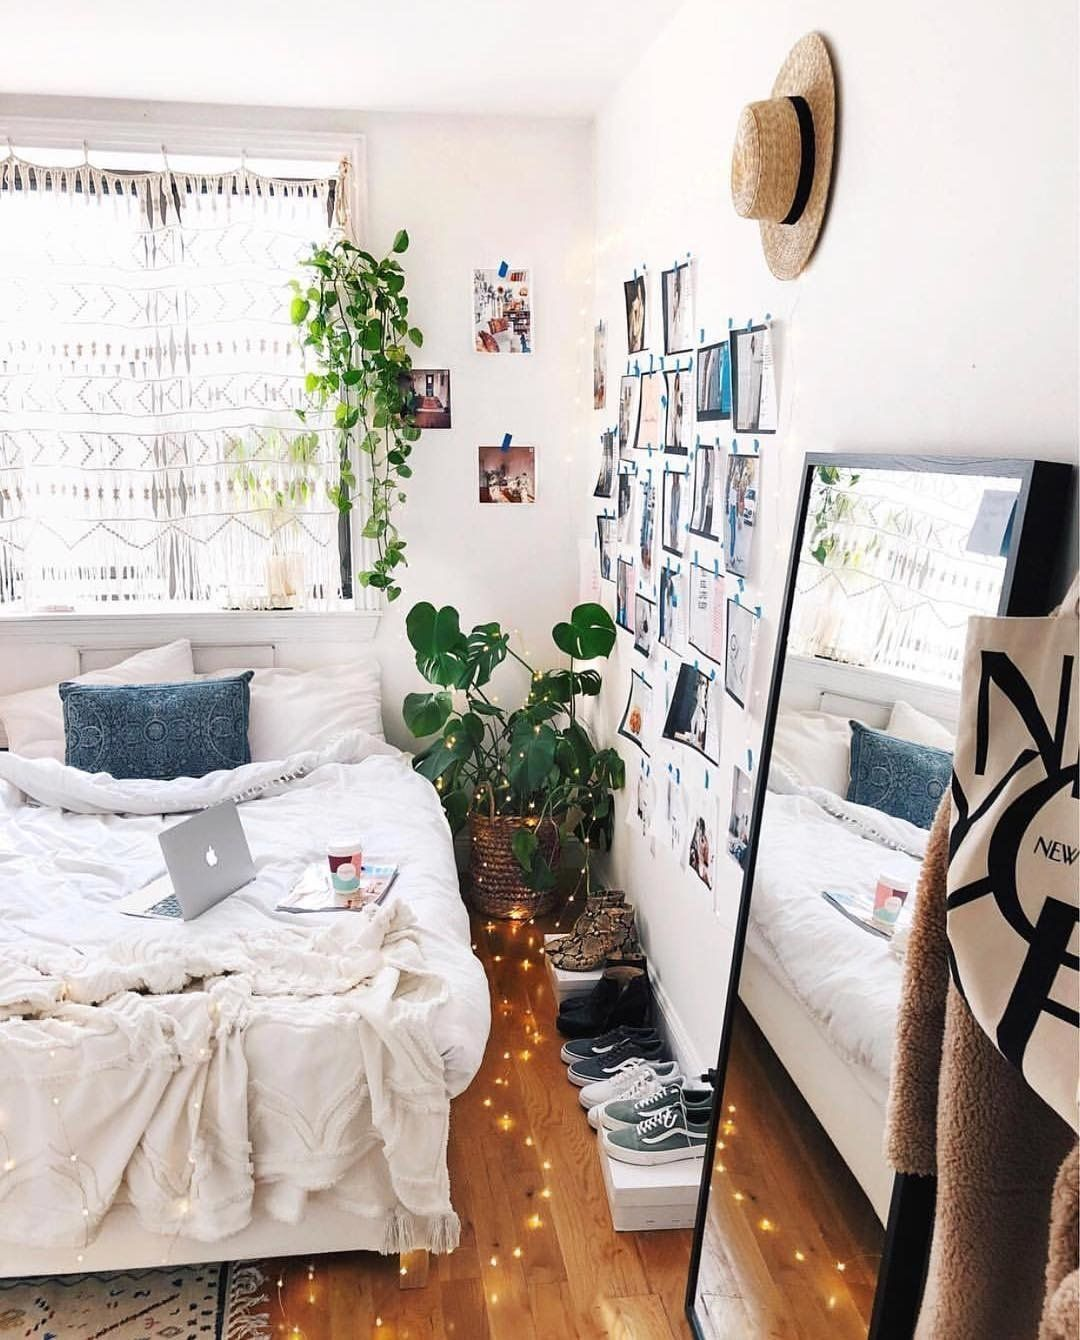 37 Urban Outfitters Bedroom Ideas Homiku Com Urban Outfitters Bedroom Room Inspiration Bedroom Design